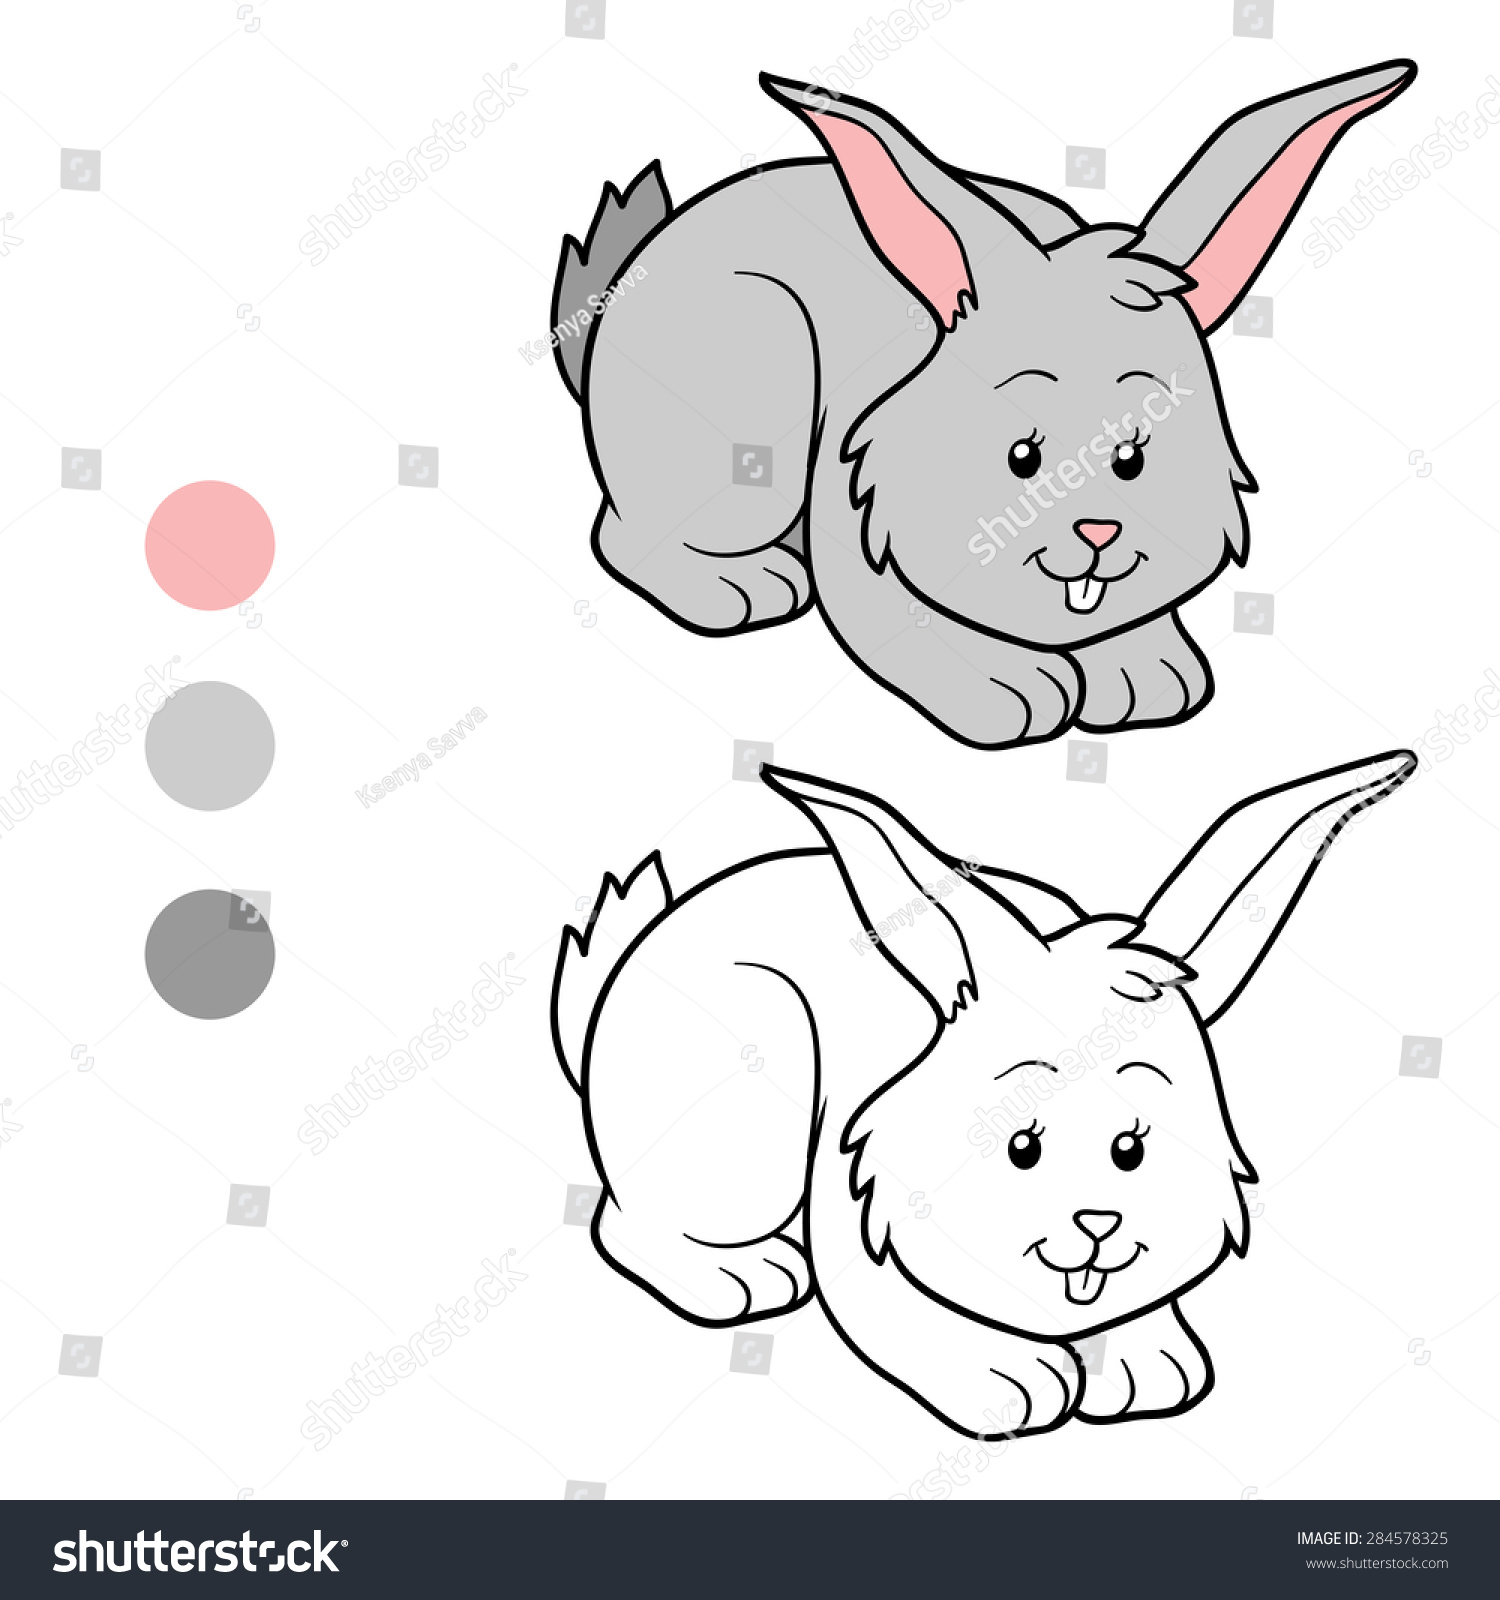 Coloring by numbers for rabbits - Coloring Book Rabbit